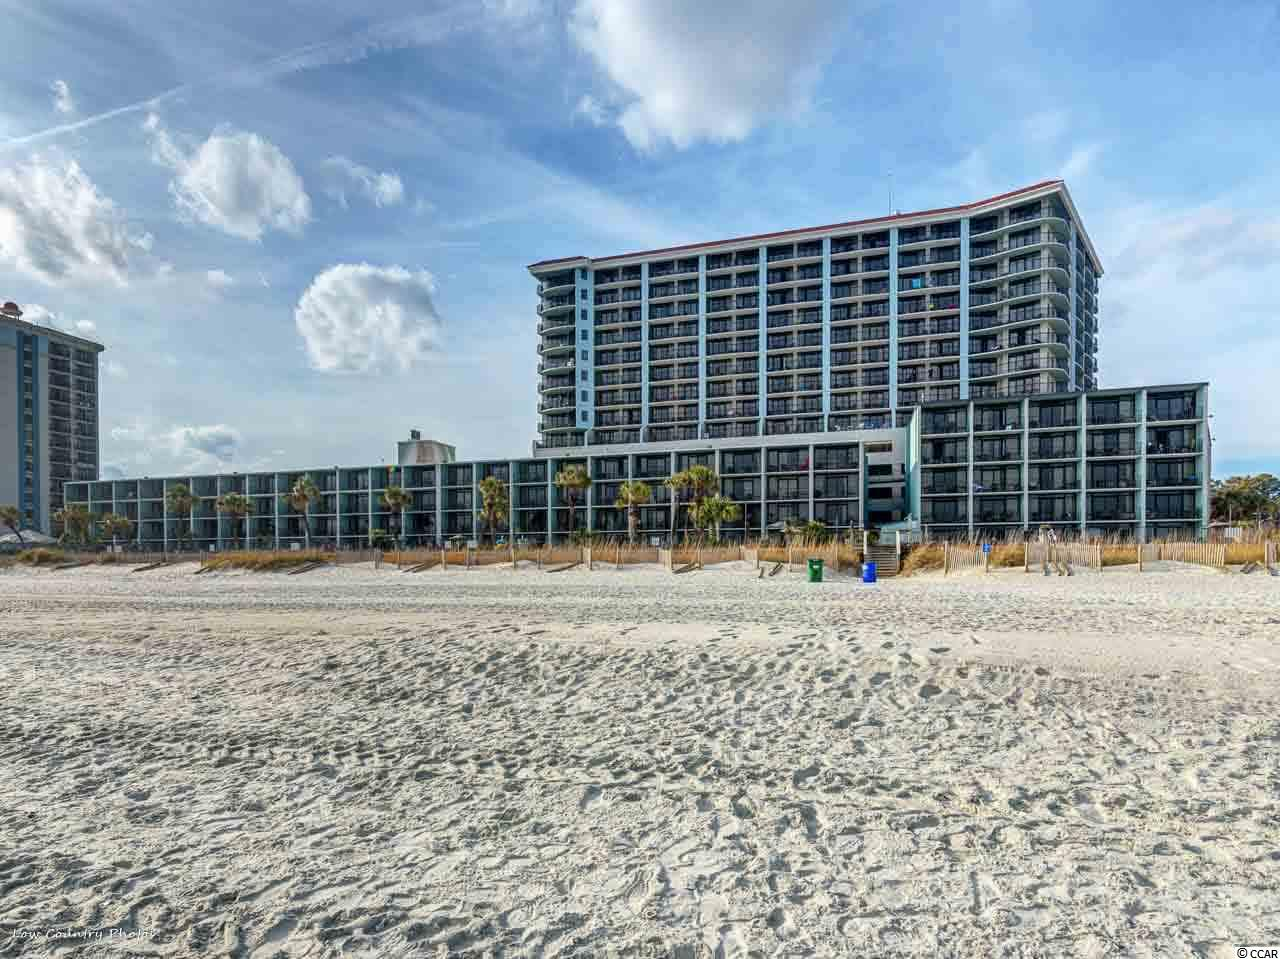 BEAUTIFULLY UPGRADED OCEANFRONT 3 BR / 2 BA CONDO AT COMPASS COVE NORTH TOWER.  COMPASS COVE FEATURES AN ARRAY OF AMENITIES ON THE OCEANFRONT INCLUDING INDOOR/OUTDOOR POOLS, TIKI BAR/GRILL, AND MORE! CLOSE TO ALL MYRTLE BEACH'S GREAT RESTAURANTS, MINIATURE GOLF, SHOPPING AND ENTERTAINMENT. A GREAT BUY FOR YOUR VACATIONS AND AS A RENTAL PROPERTY! DON'T MISS OUT ON THE GREAT OPPORTUNITY!!